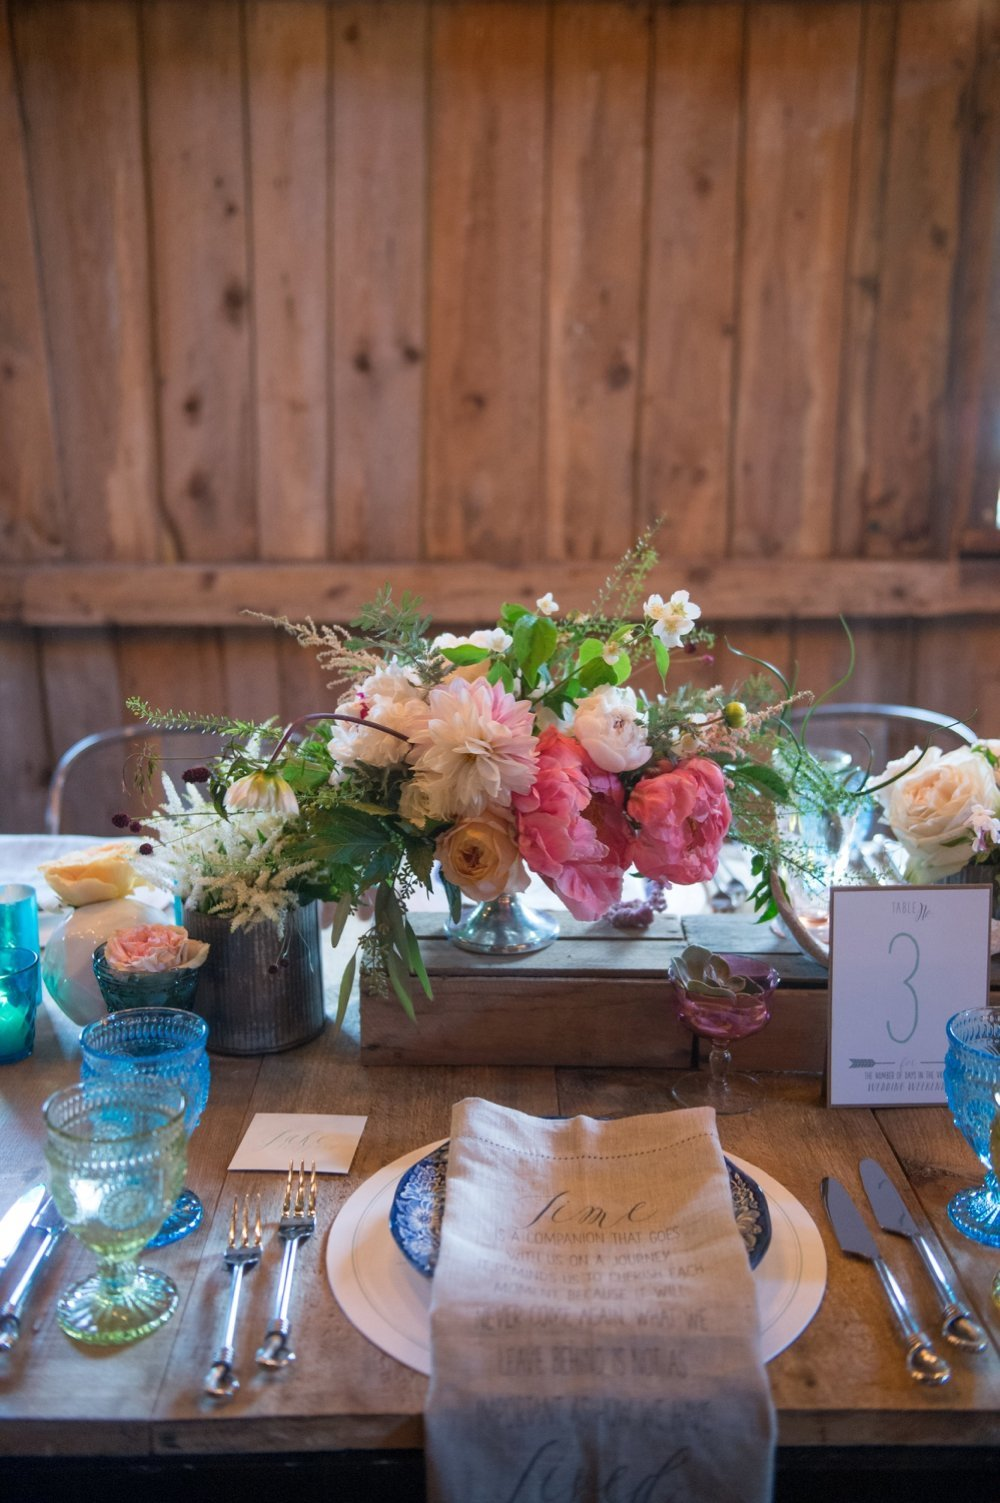 Rustic and colorful barn wedding at The Barn on Walnut Hill in Maine